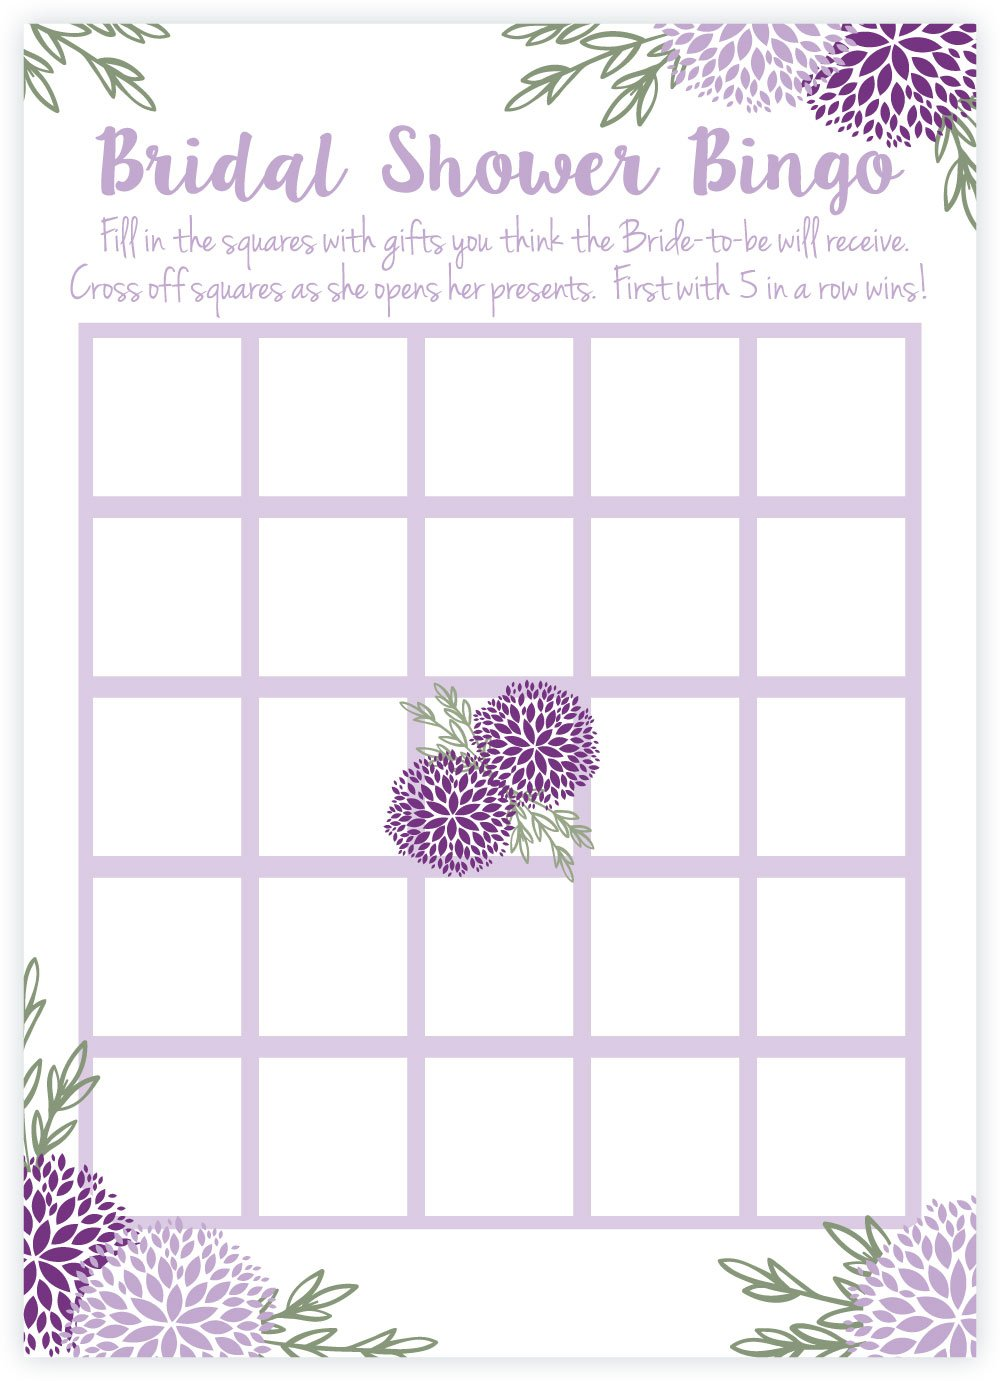 Purple Floral Bridal Shower Bingo Game Cards (50 Count) by m&h invites